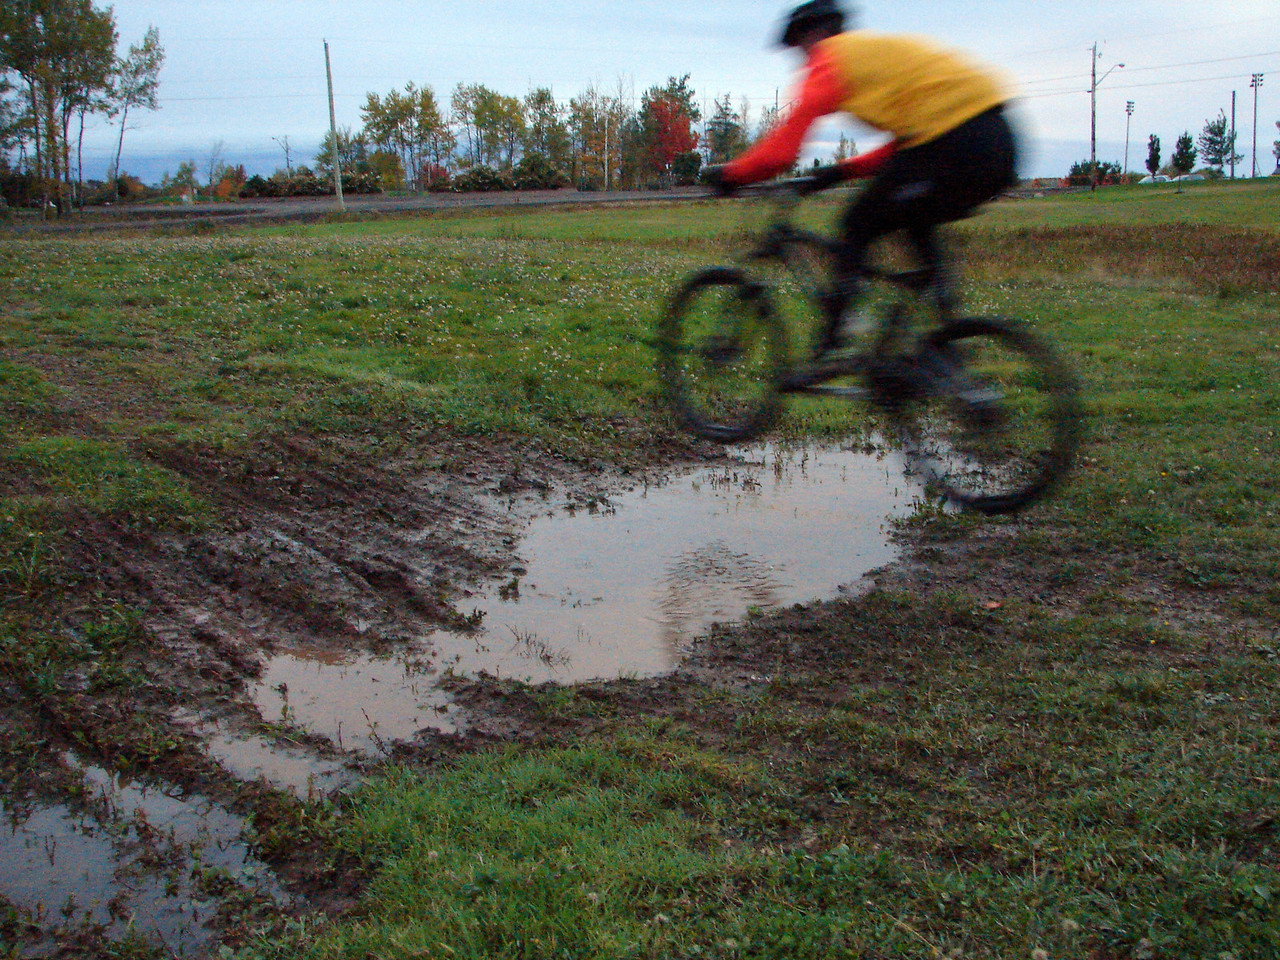 How can you tell the difference between road bikers and mountain bikers? Put a puddle in front of them. Nice jump Luc.